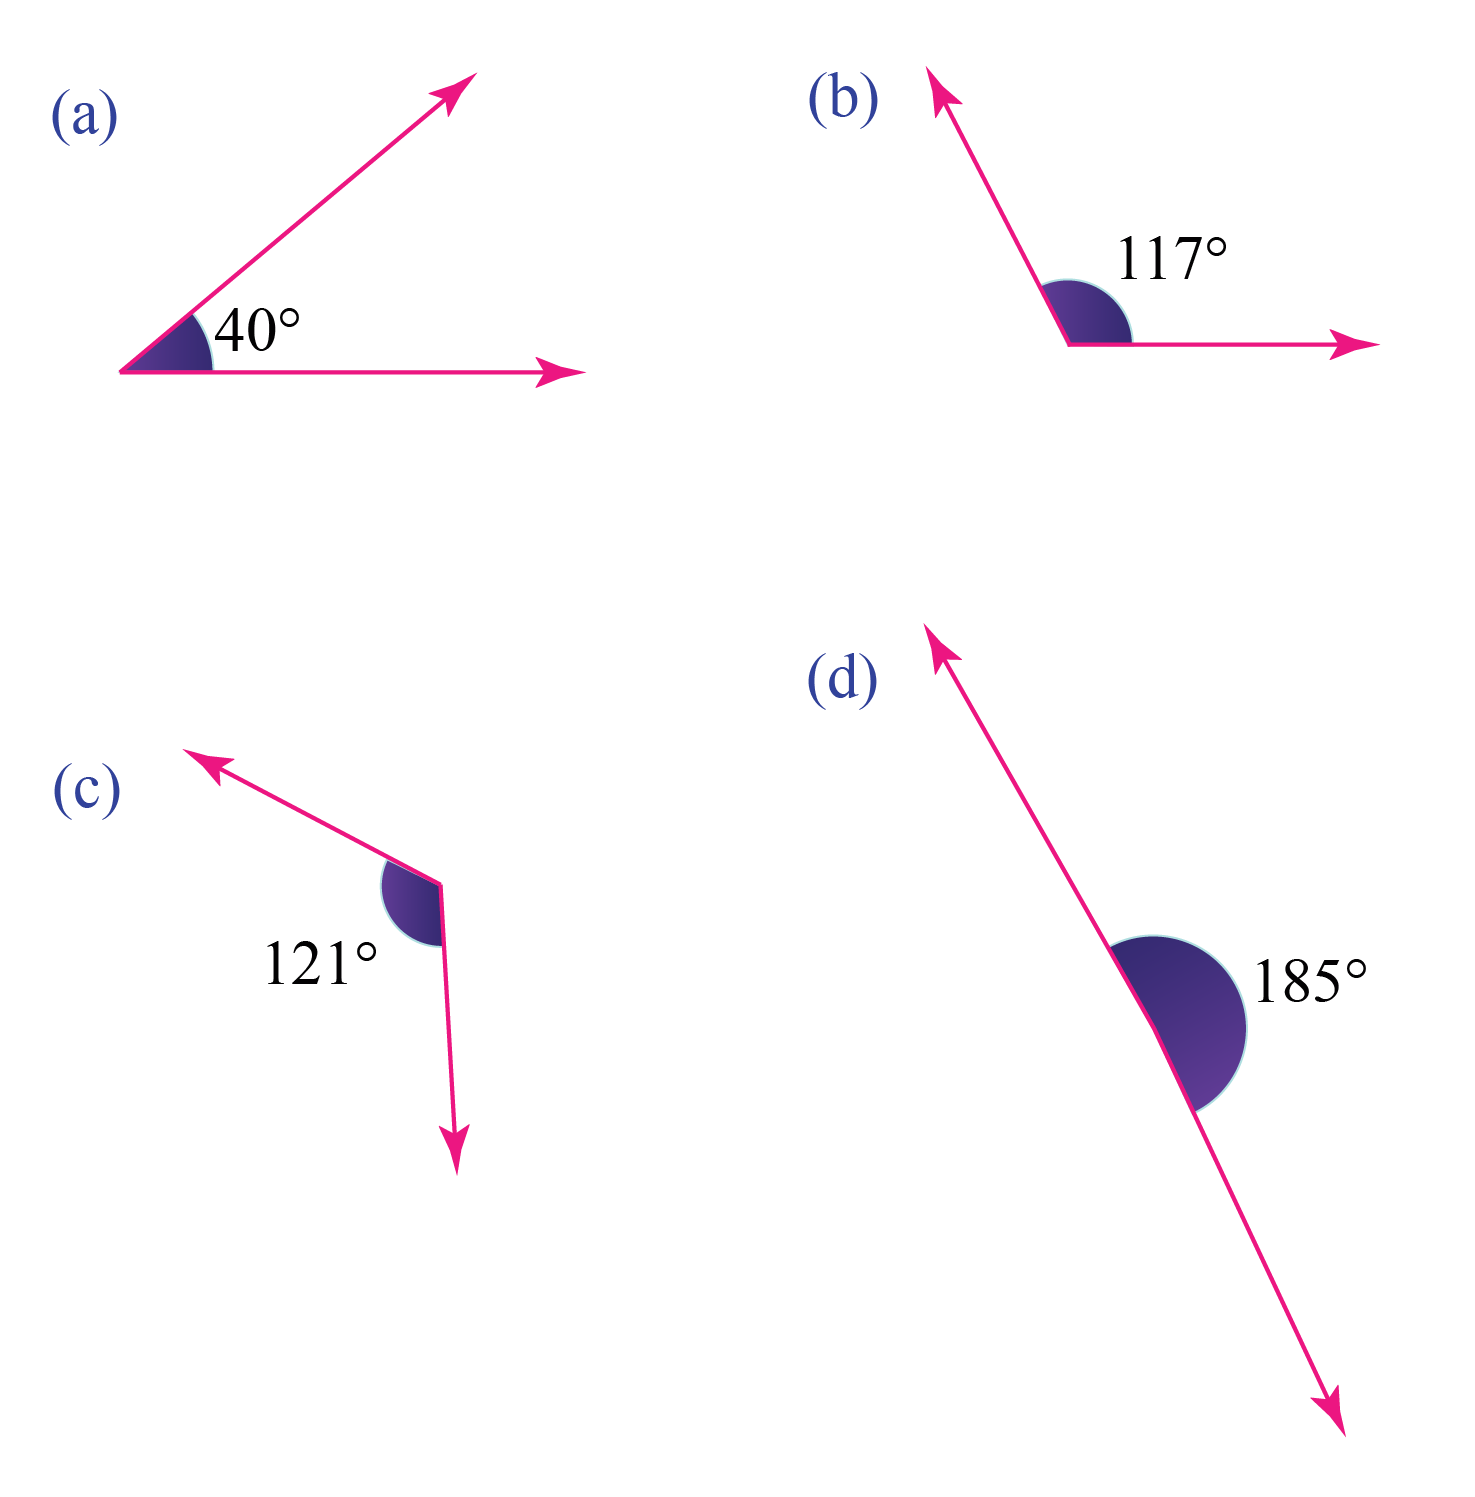 Obtuse angles in math and their measures